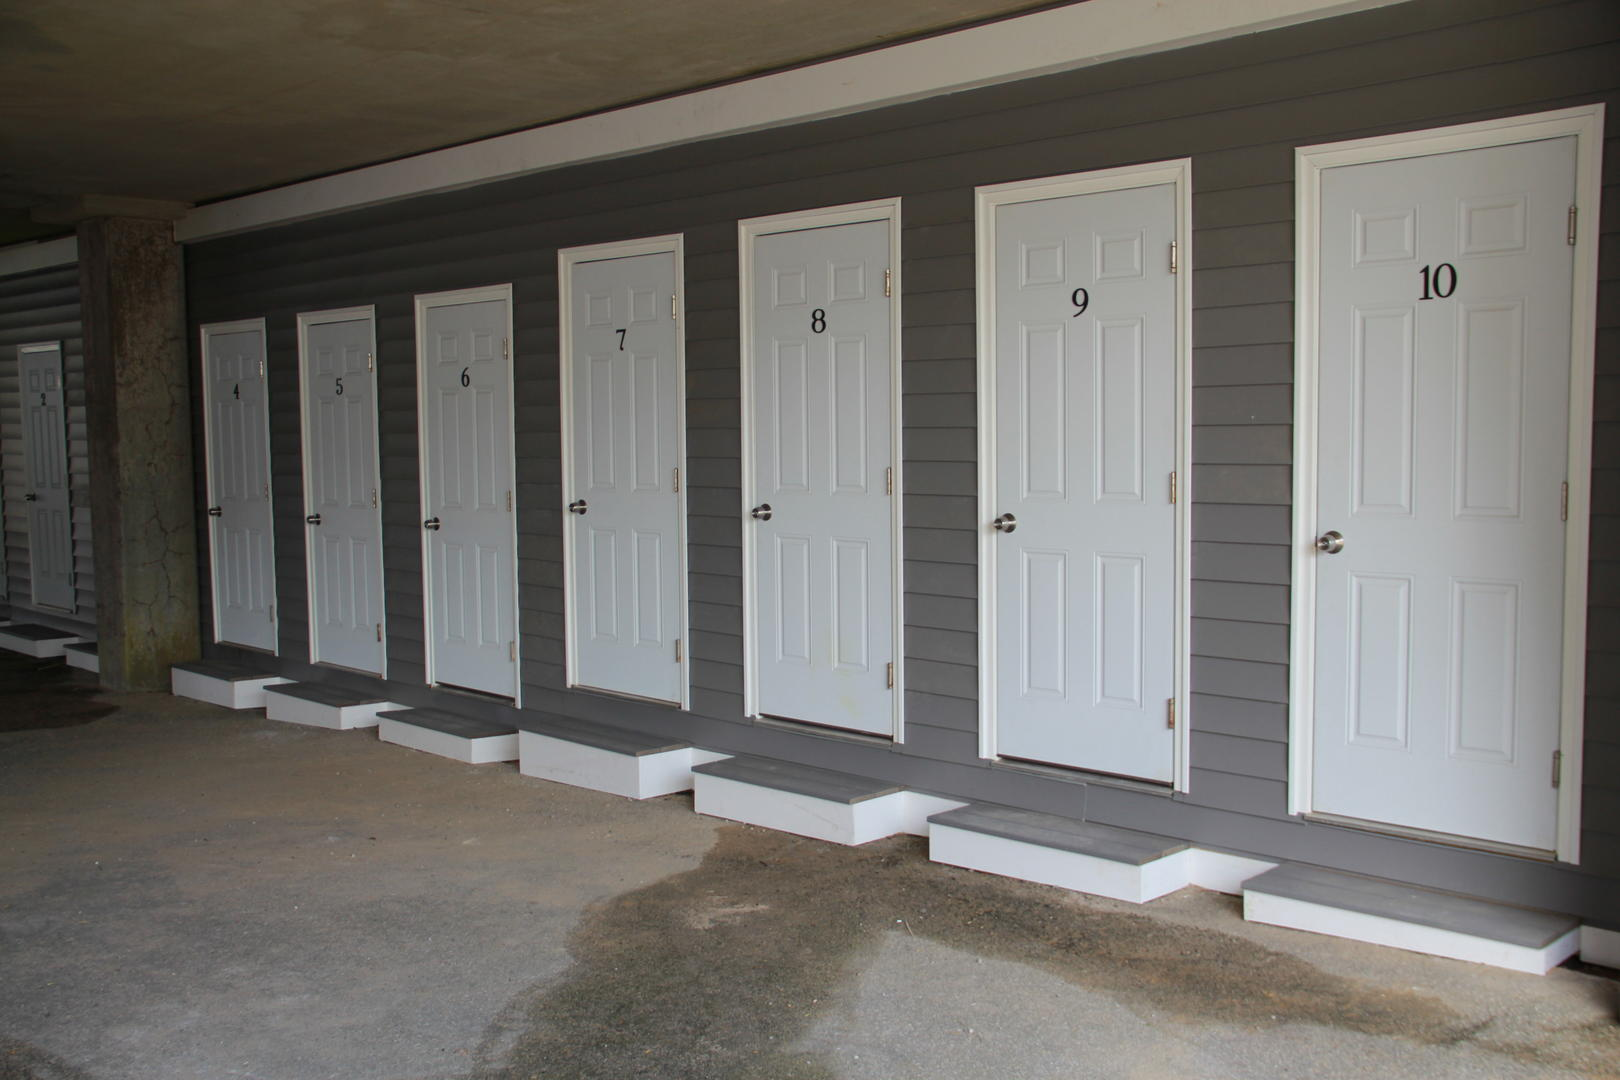 Cinnamon Teal 9 - Outdoor Storage Closet